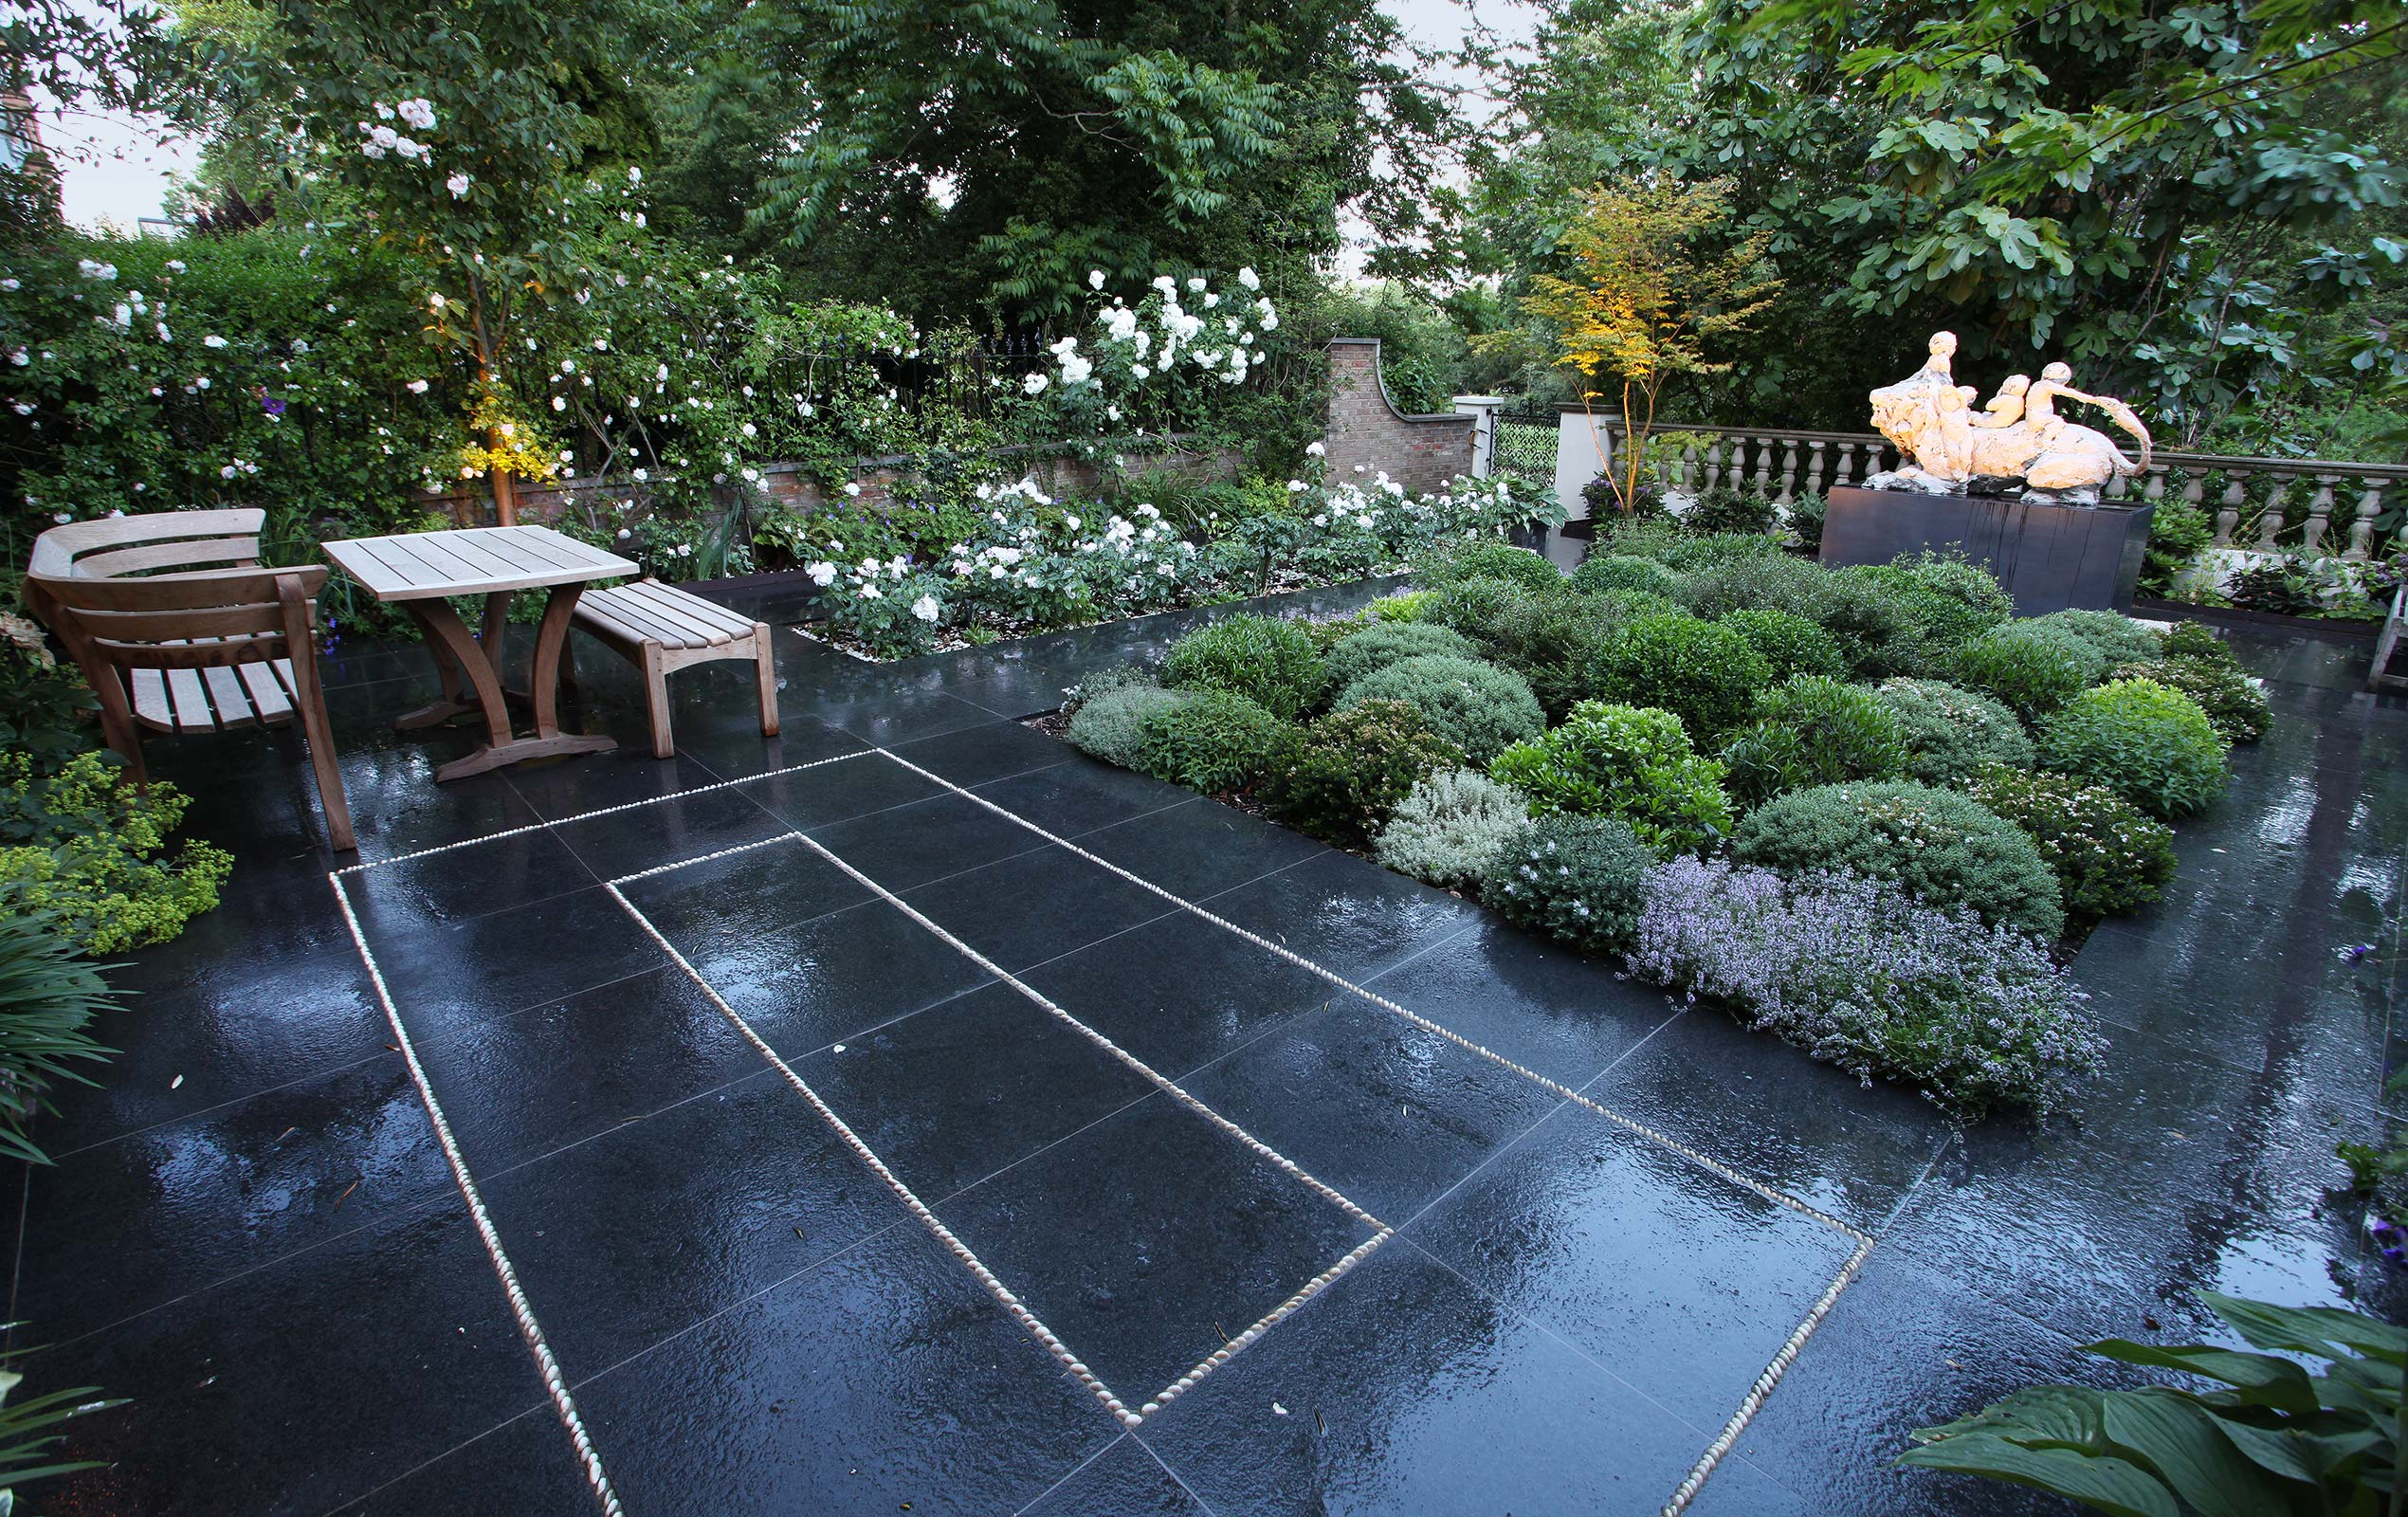 Ladbroke Square Garden designed by Maïtanne Hunt